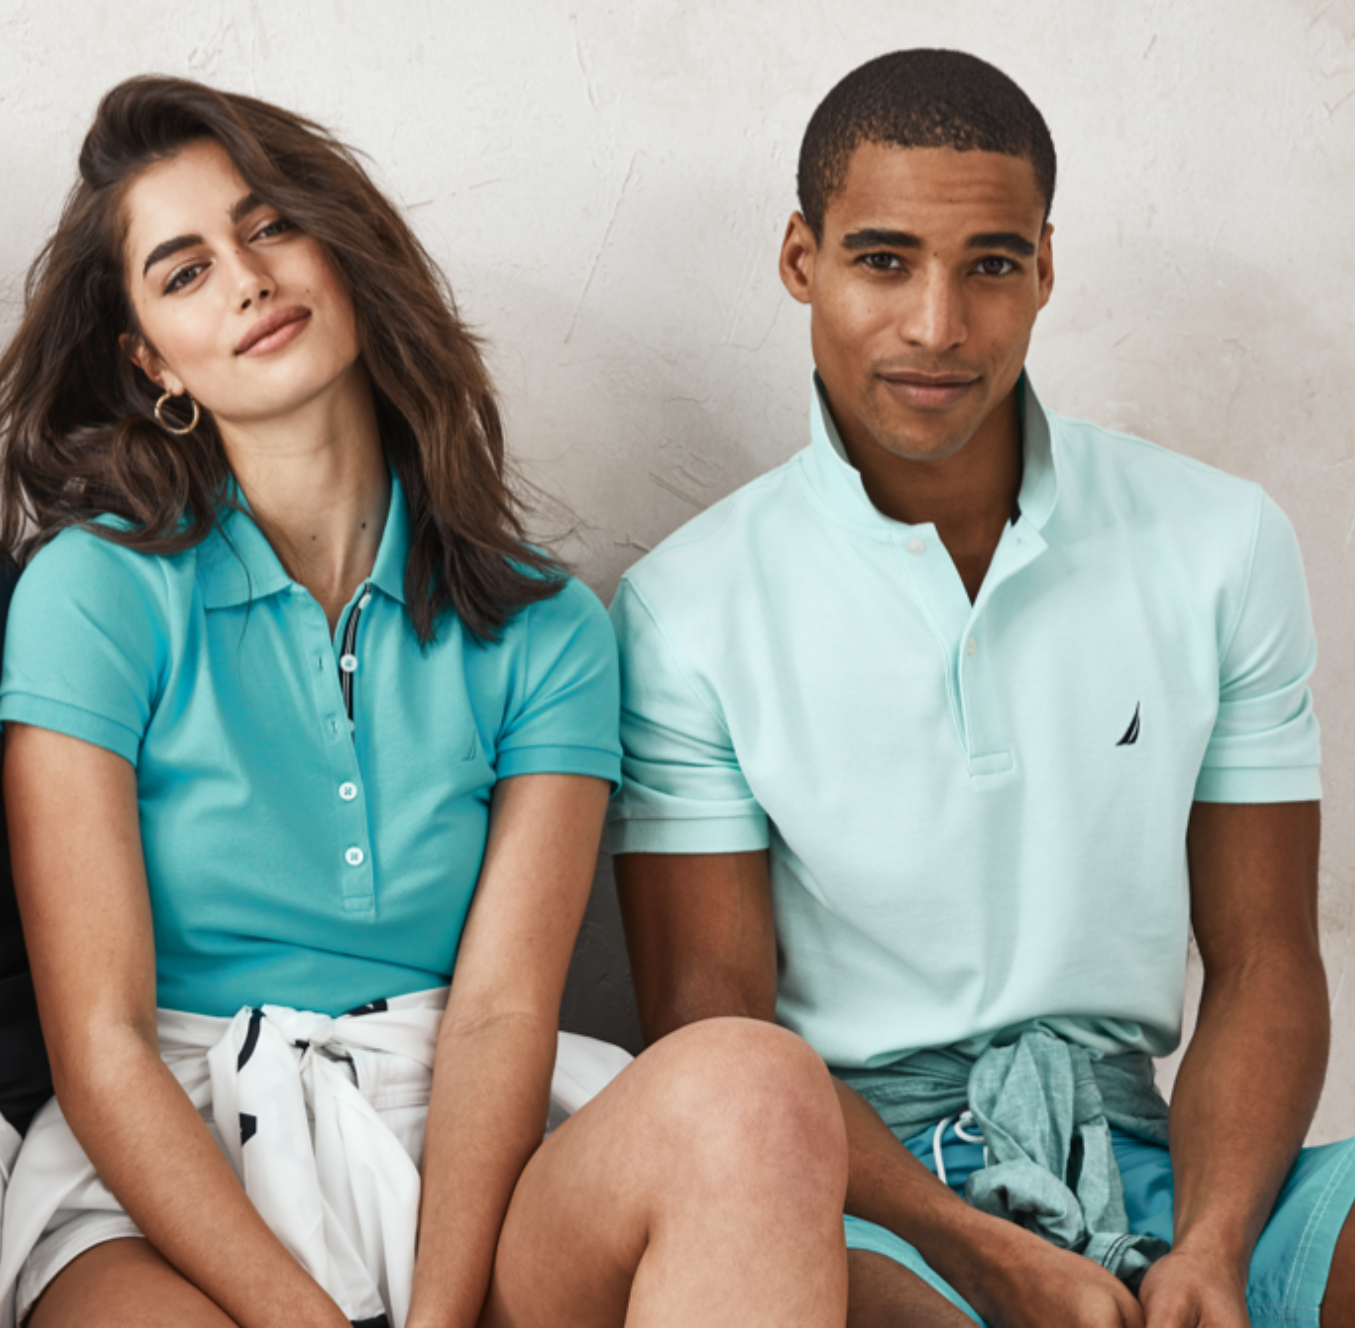 Nautica: Mother's Day Gifts From $12.99